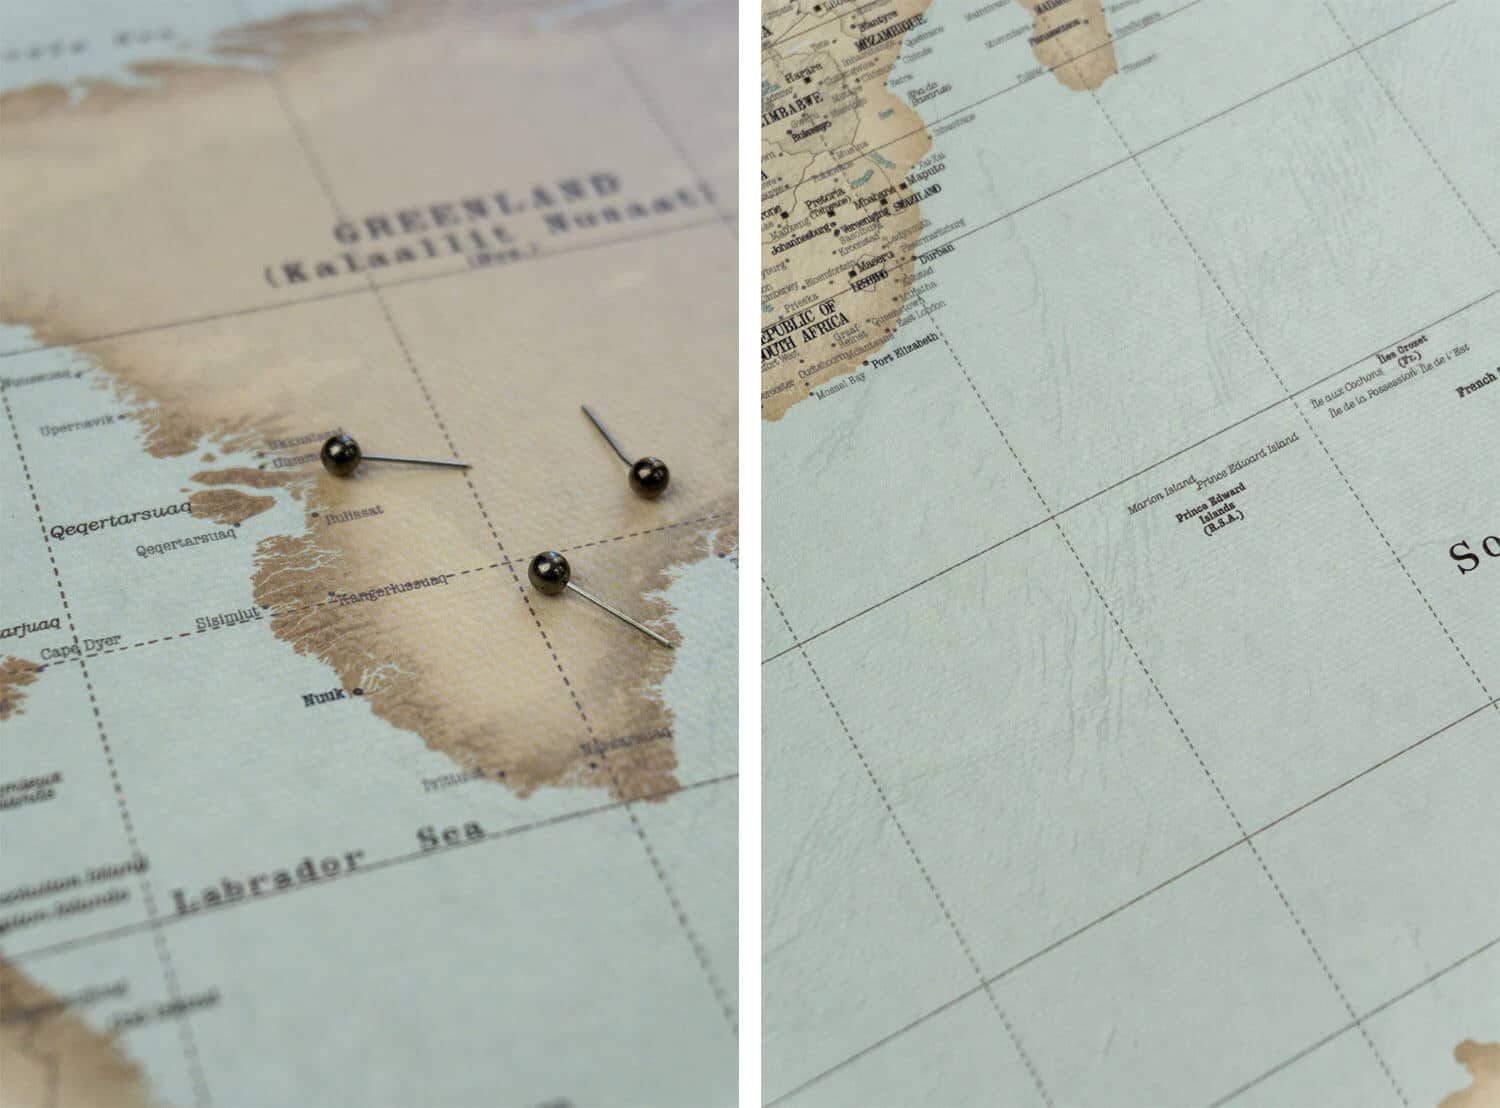 vintage world map pinboard with pins